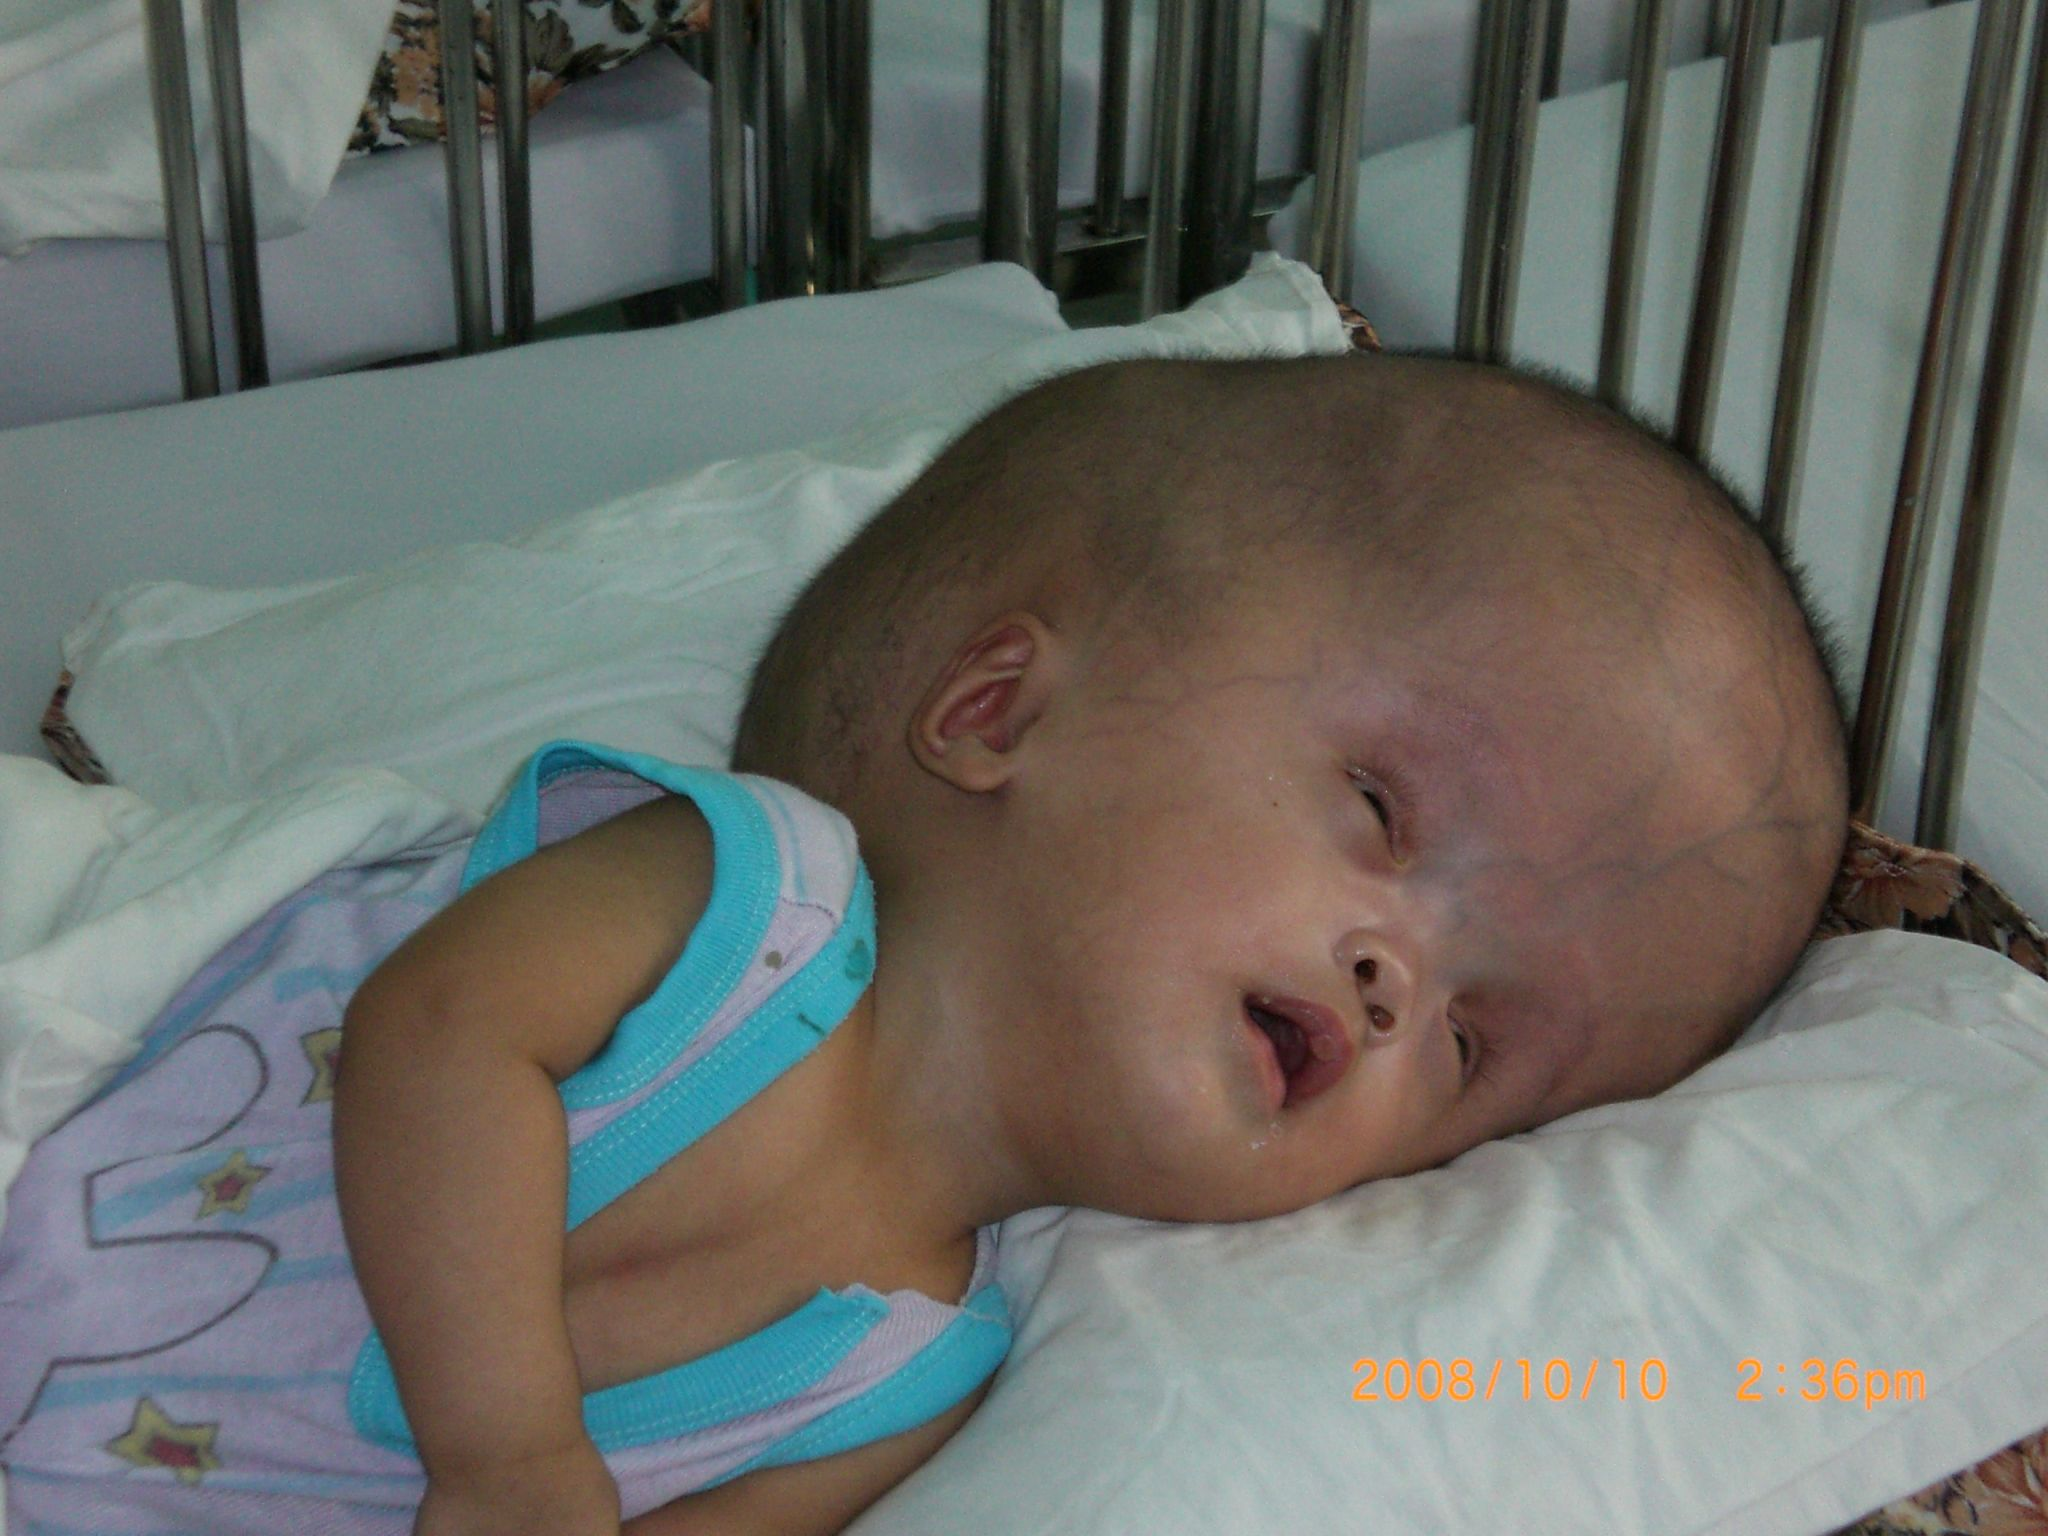 Agent orange diseases affect many today orphans in